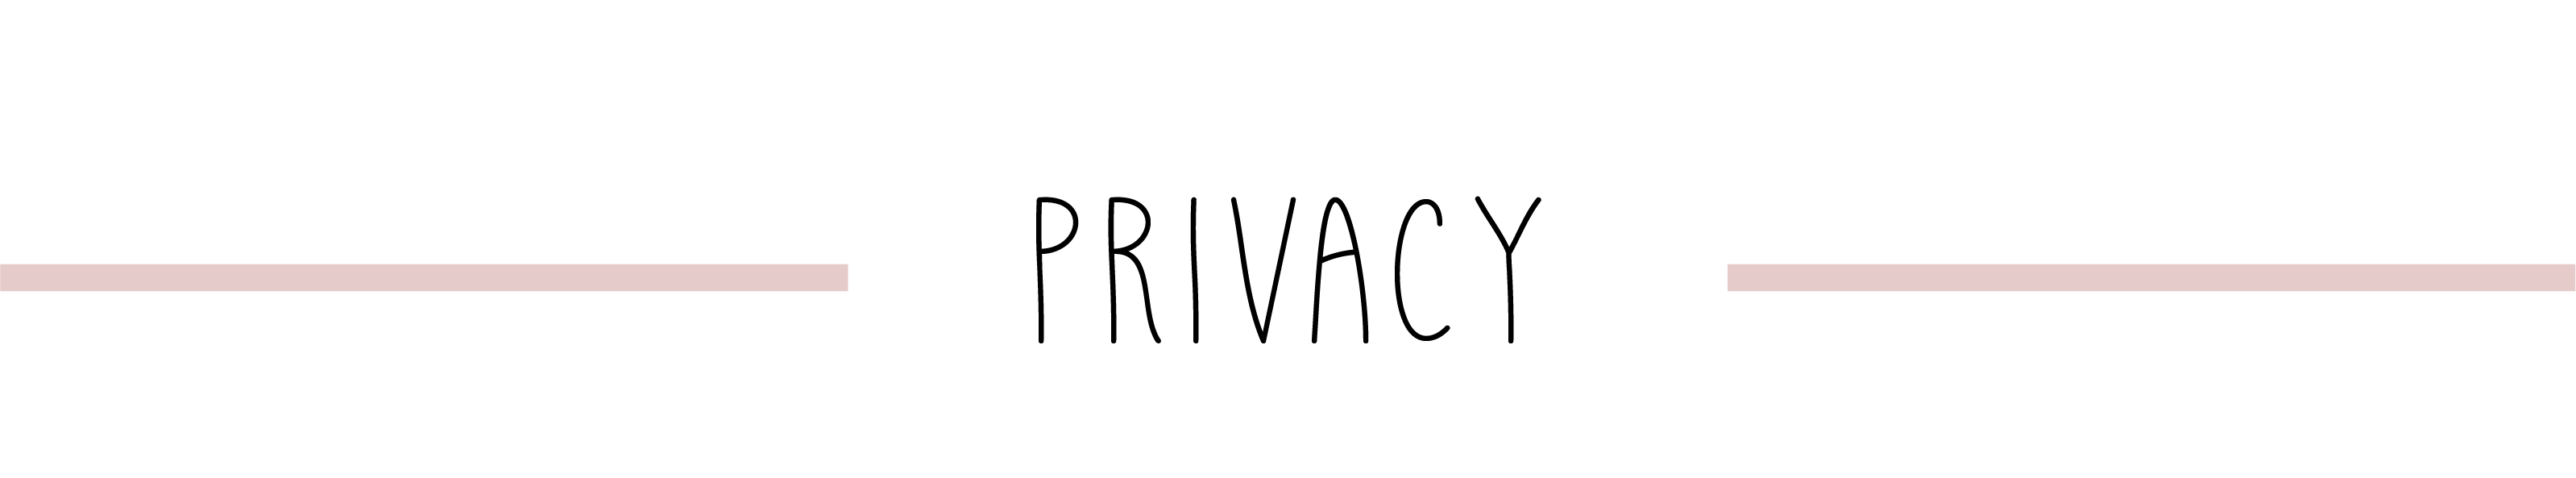 Titels - privacy - mobile